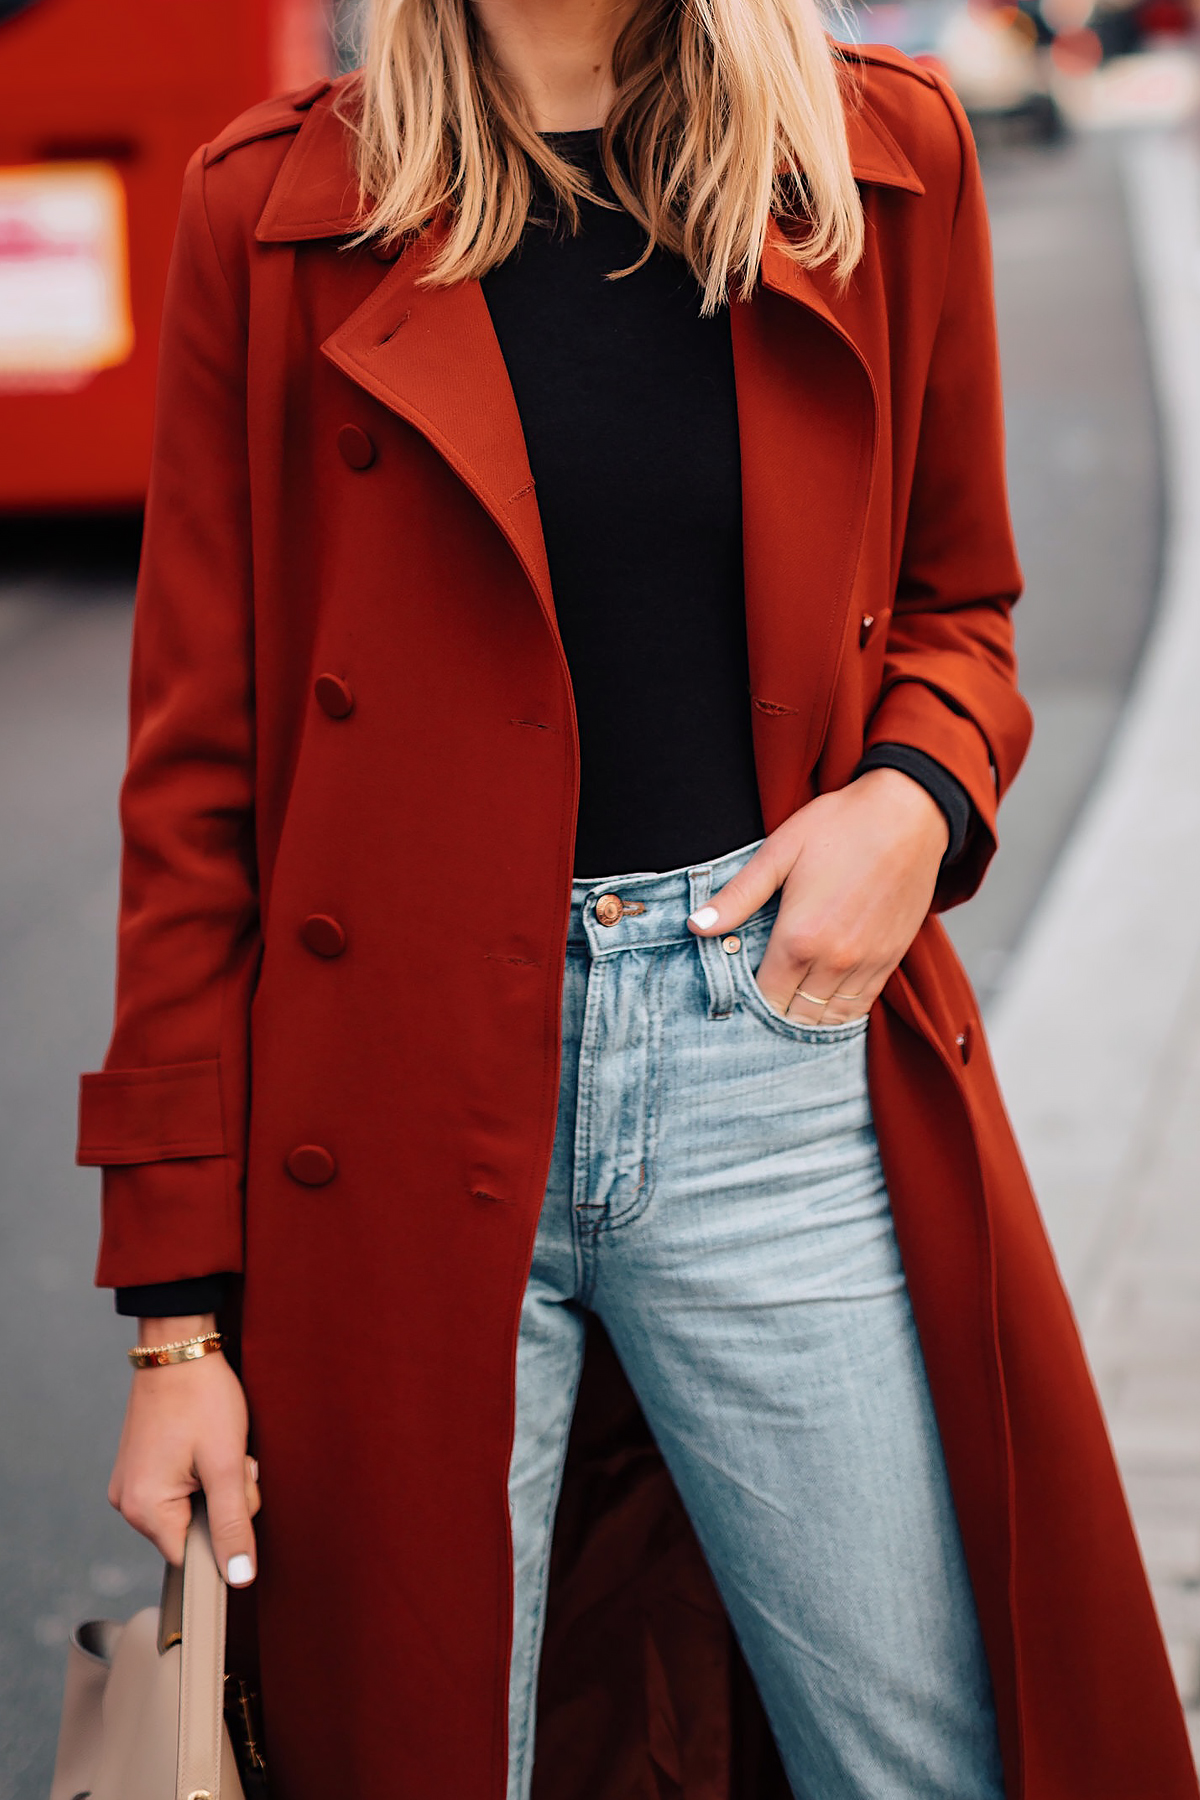 Woman Wearing Red Trench Coat Black Top Jeans Outfit Fashion Jackson San Diego Fashion Blogger London Street Style